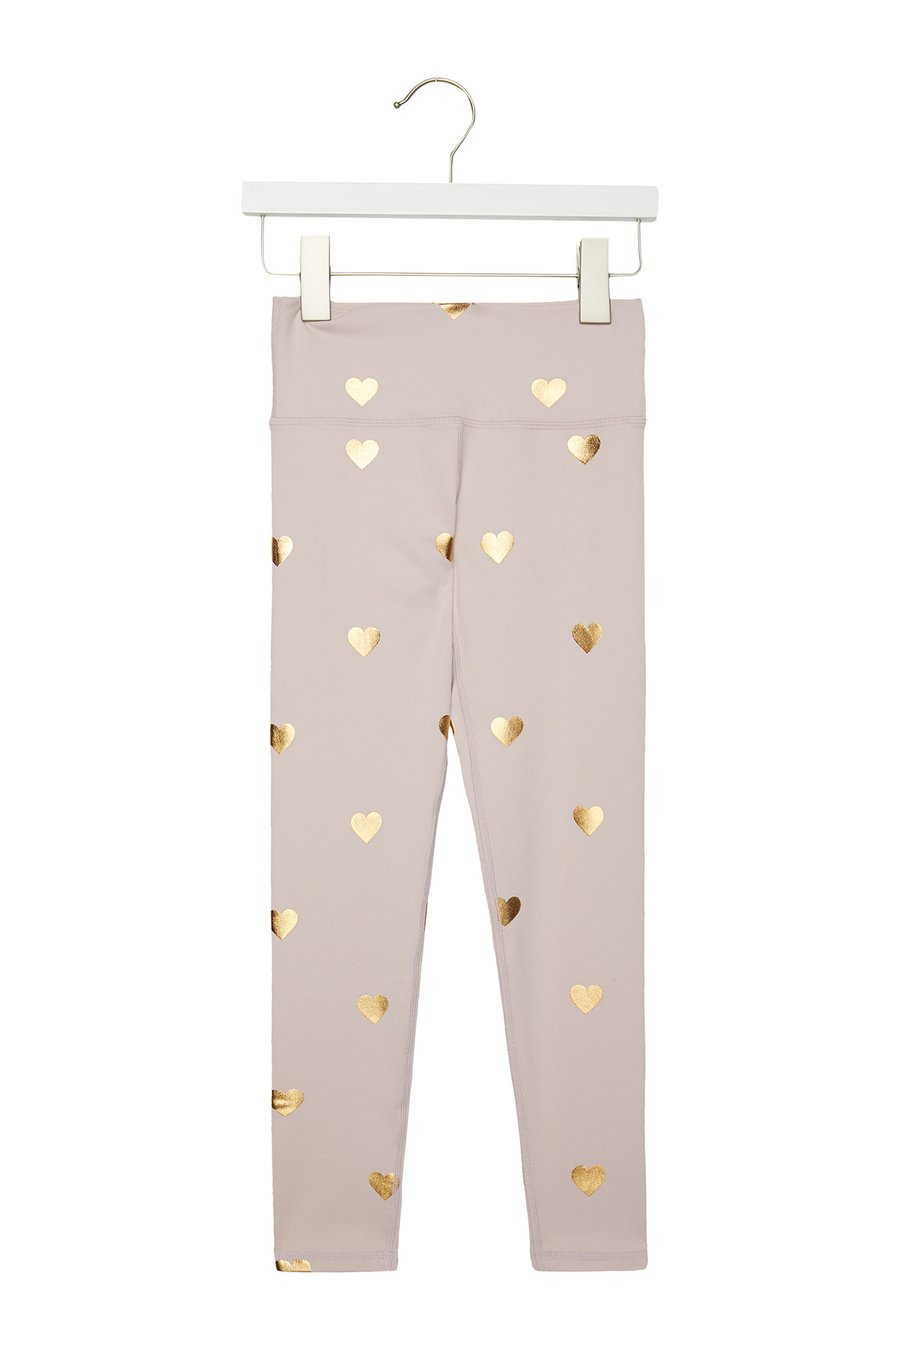 Spiritual Gangster - Girls Active Legging - Rose Quartz Heart Print